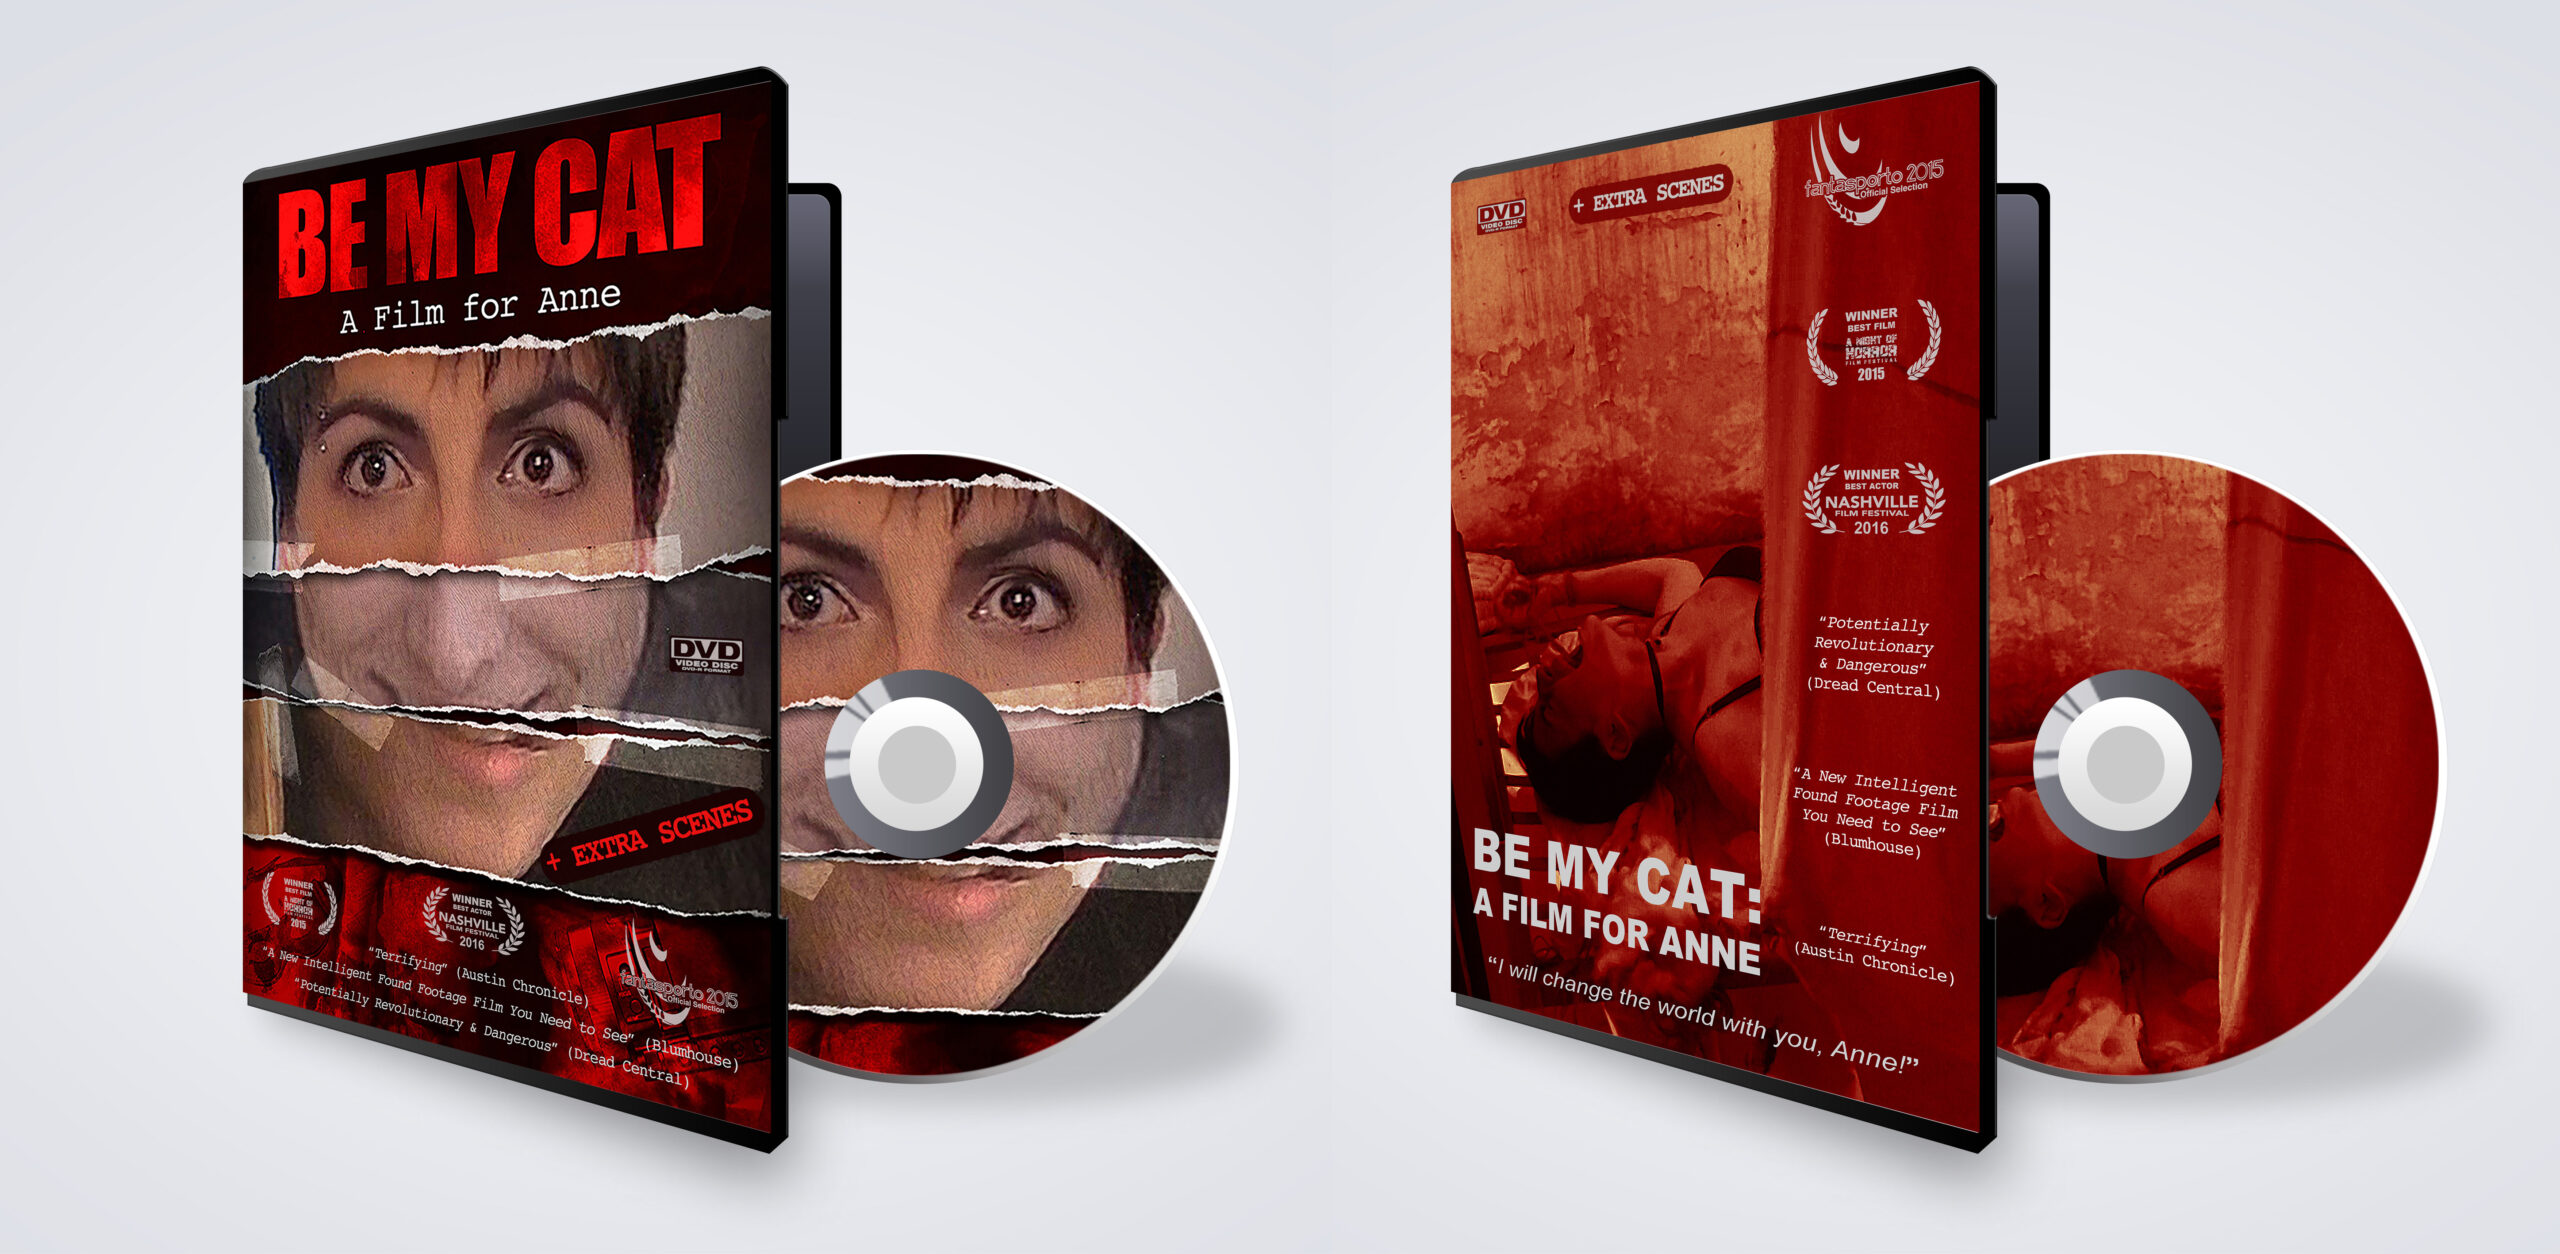 """Cult horror movie """"Be My Cat: A Film for Anne"""" released on DVD and YouTube"""